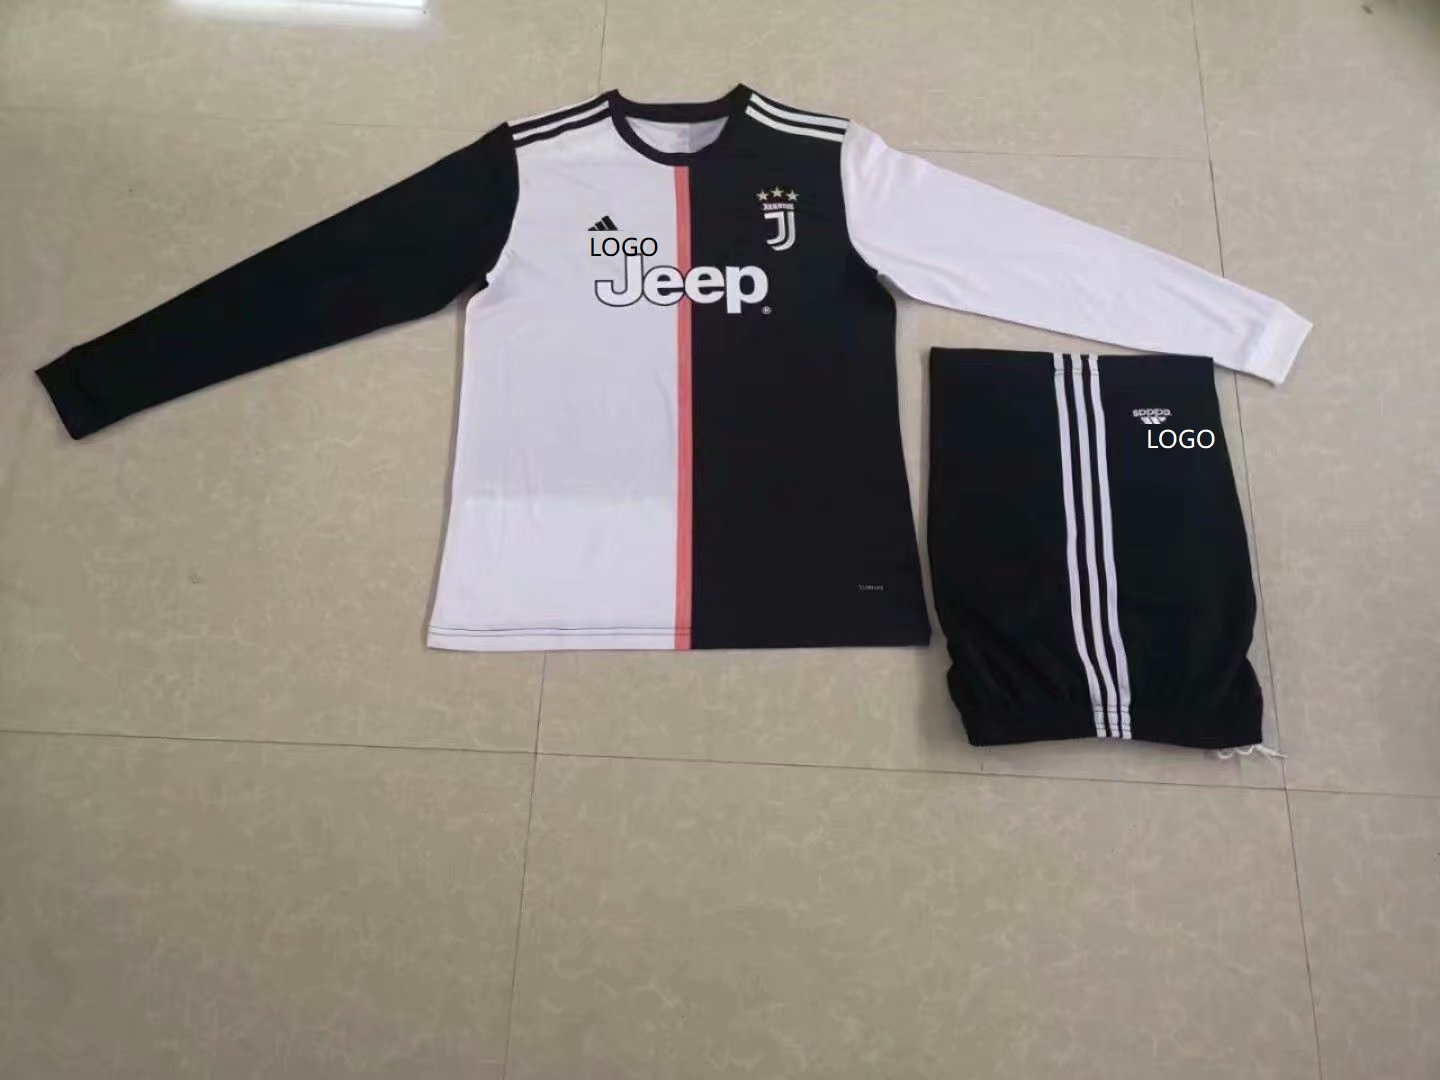 33f78ccc401 2019/20 AAA Quality Men juventus Home long sleeve Soccer jersey Item NO:  444528